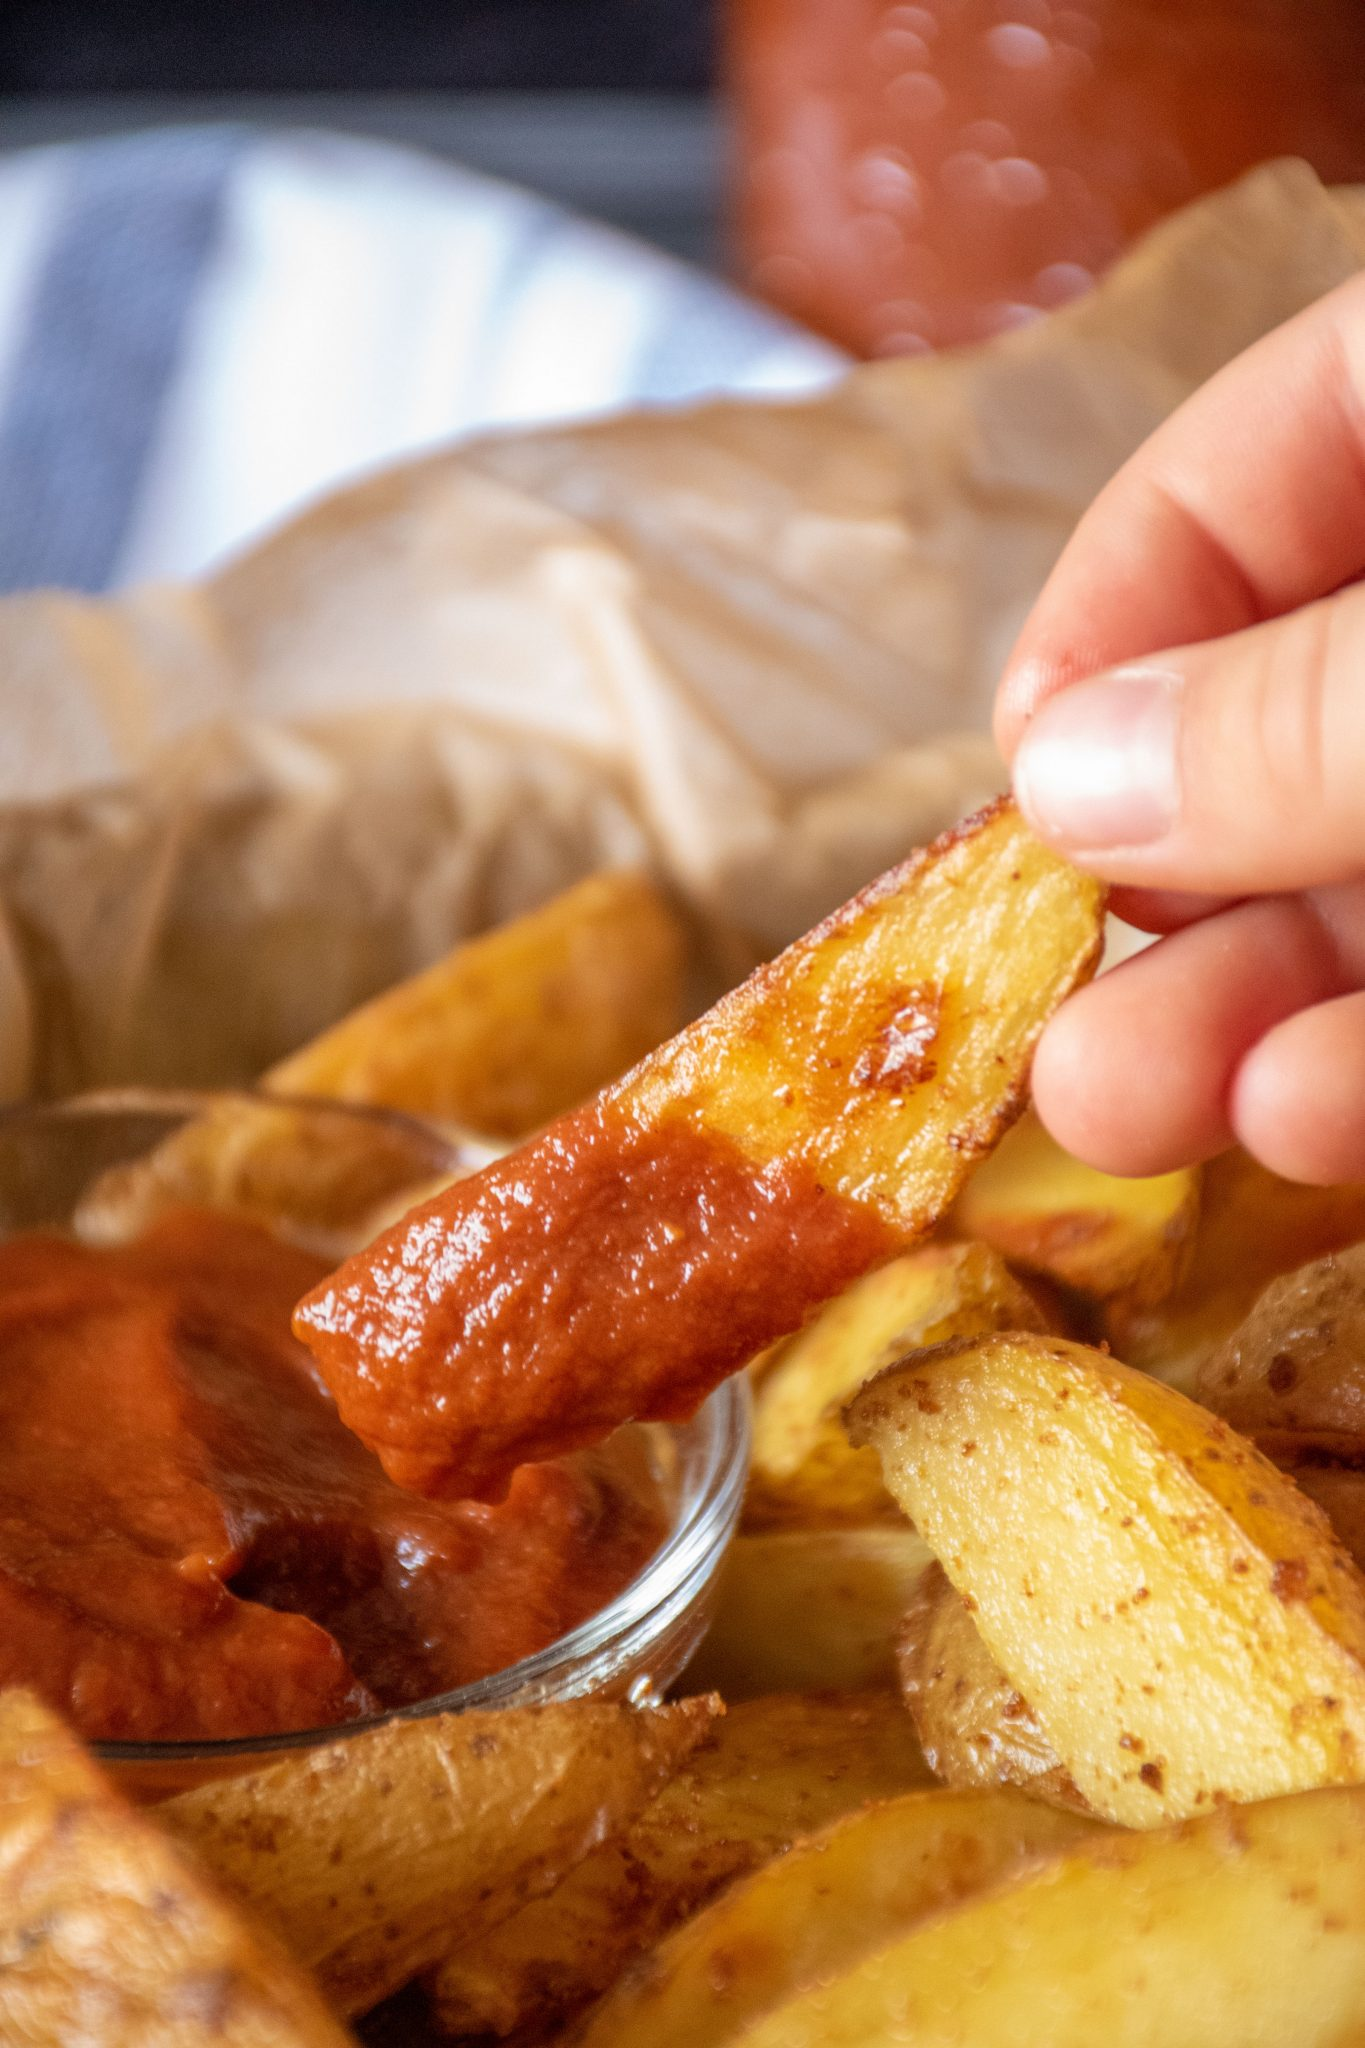 Hand holding a potato wedge, dipped in ketchup.